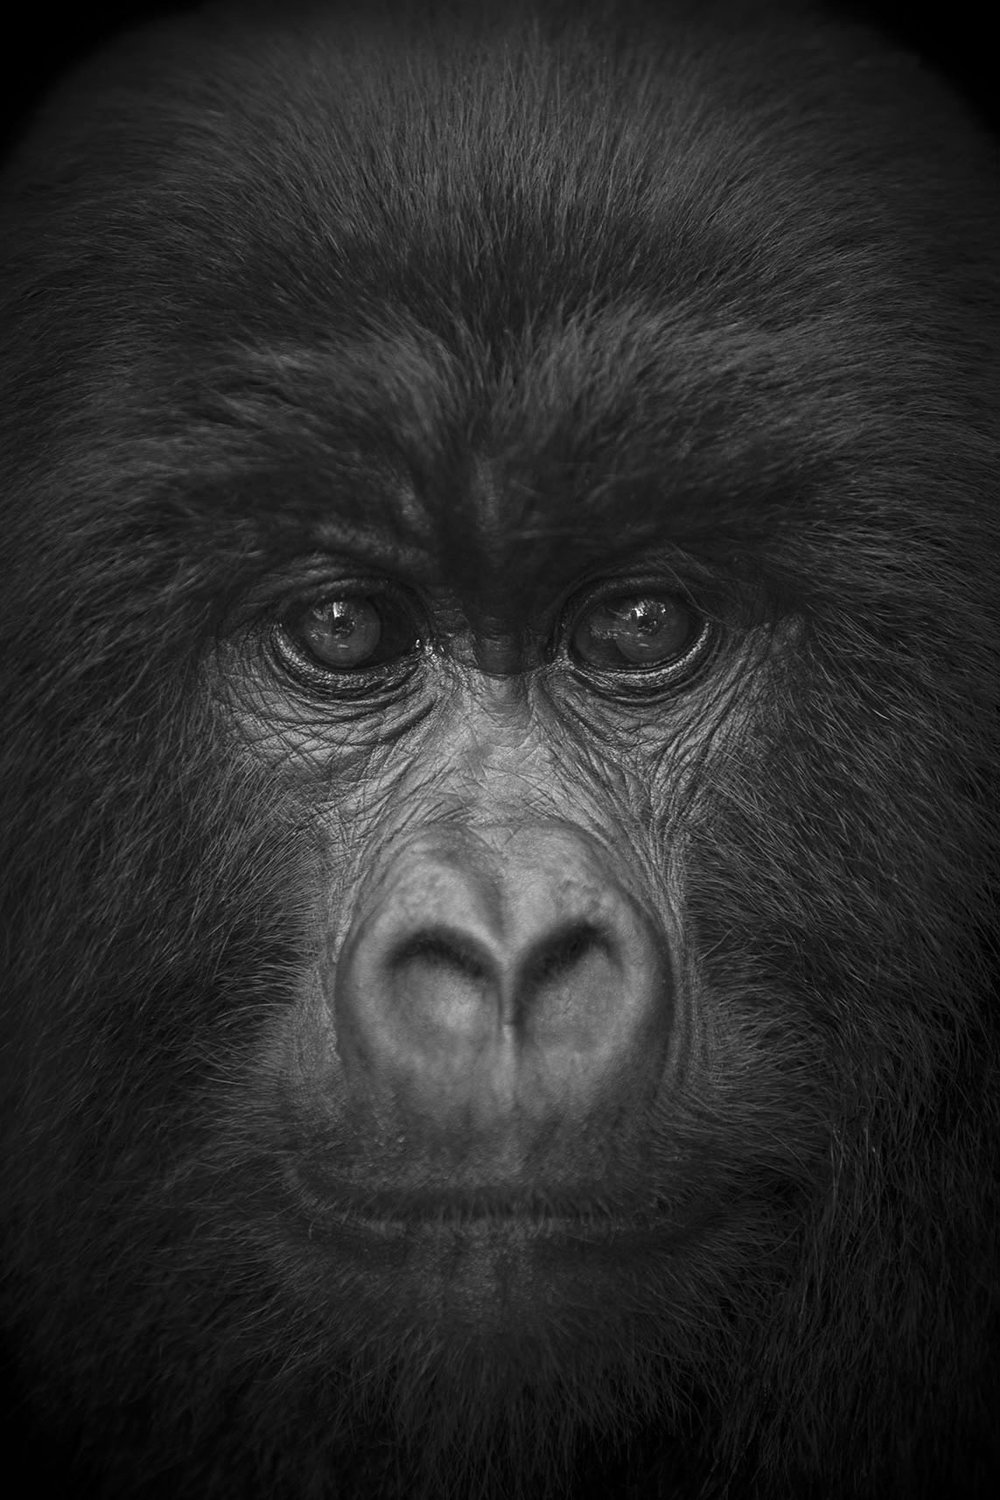 Gorilla, Virunga National Park, Congo, 2017  By Björn Persson  Available in 6 different sizes, Price from 10.000 SEK